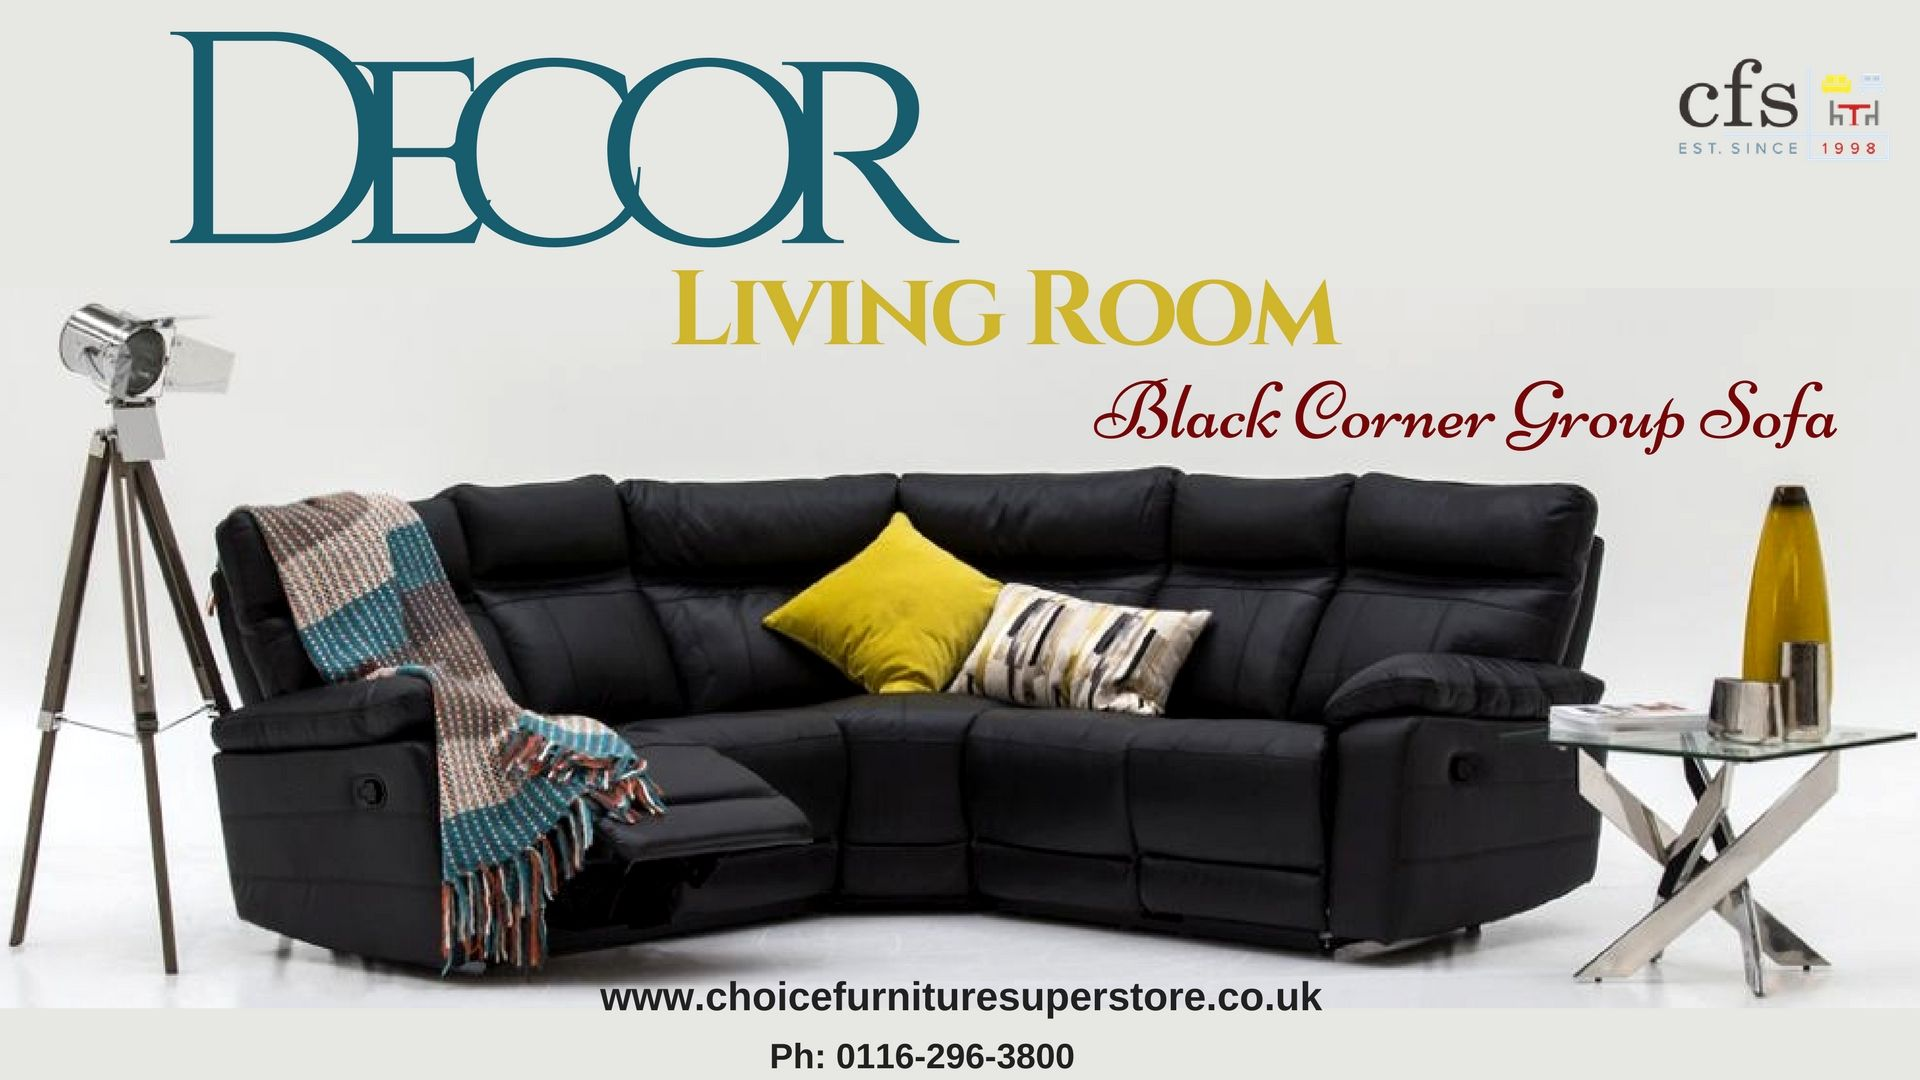 Vida Living Positano Black Corner Group Sofa Leathersofa Cornersofa Embledsofa Blackleathersofa Dimensions